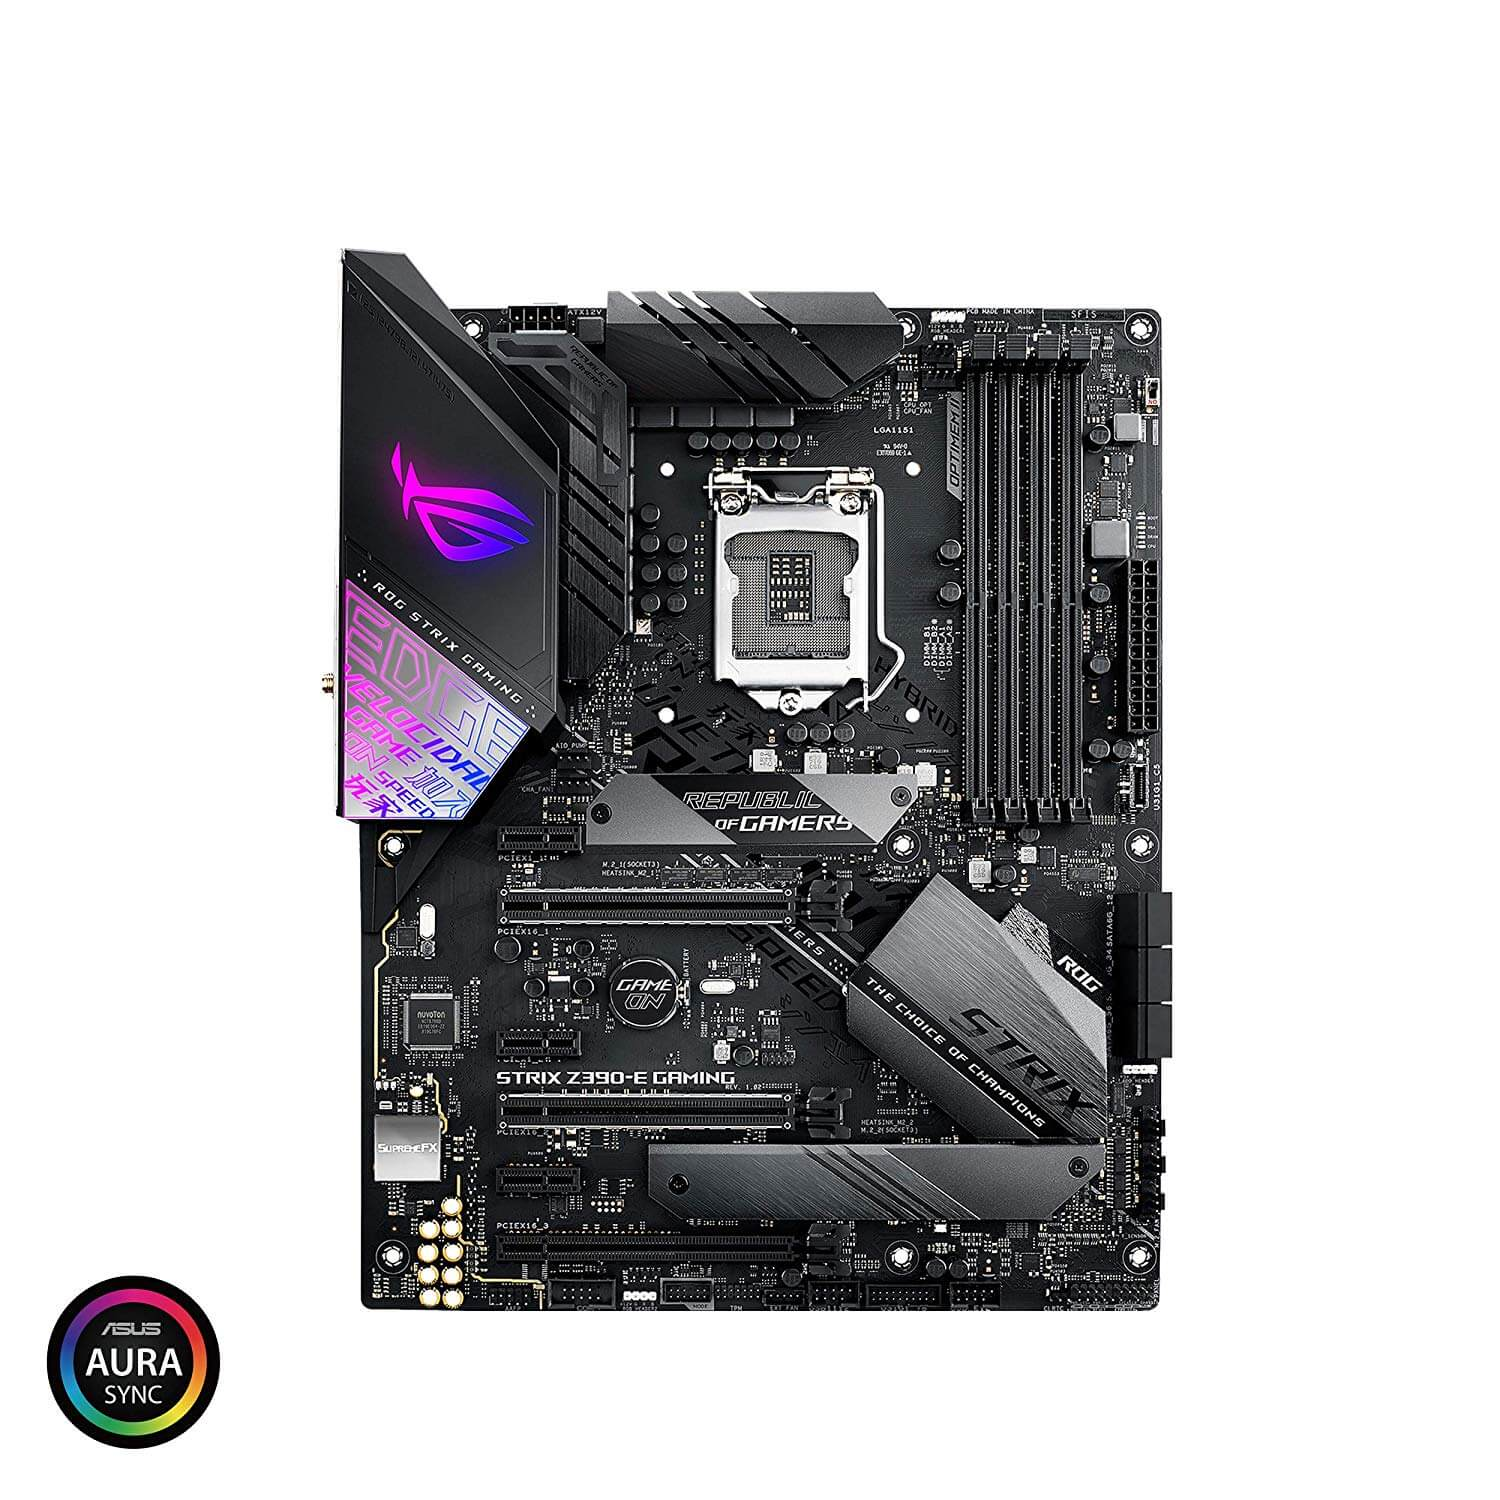 ASUS ROG Strix Z390-E Gaming, HDMI, SLI & X-Fire, USB 3.1 Gen2, USB C, AC WiFi+Bluetooth